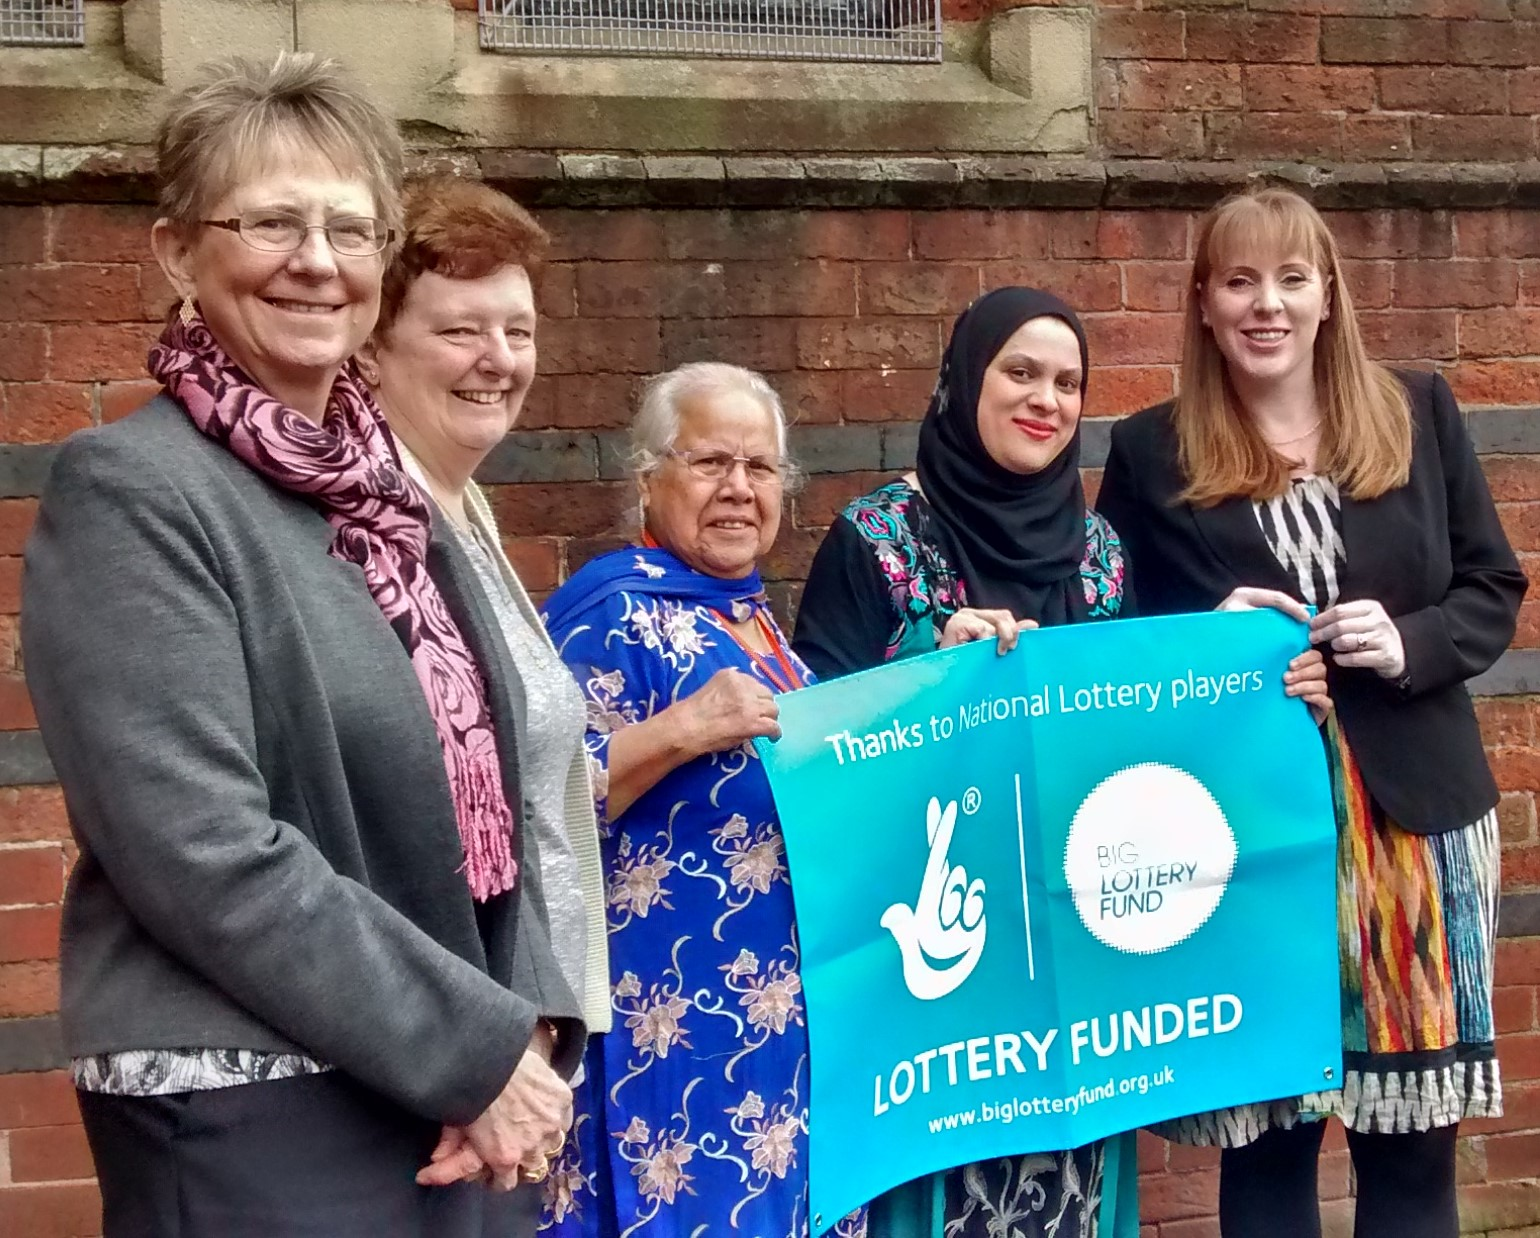 (left to right) Cllr Bowman, Judith Hilton, Mrs Sarwar Ibrahim, Hasna Khan and Angela Rayner, MP